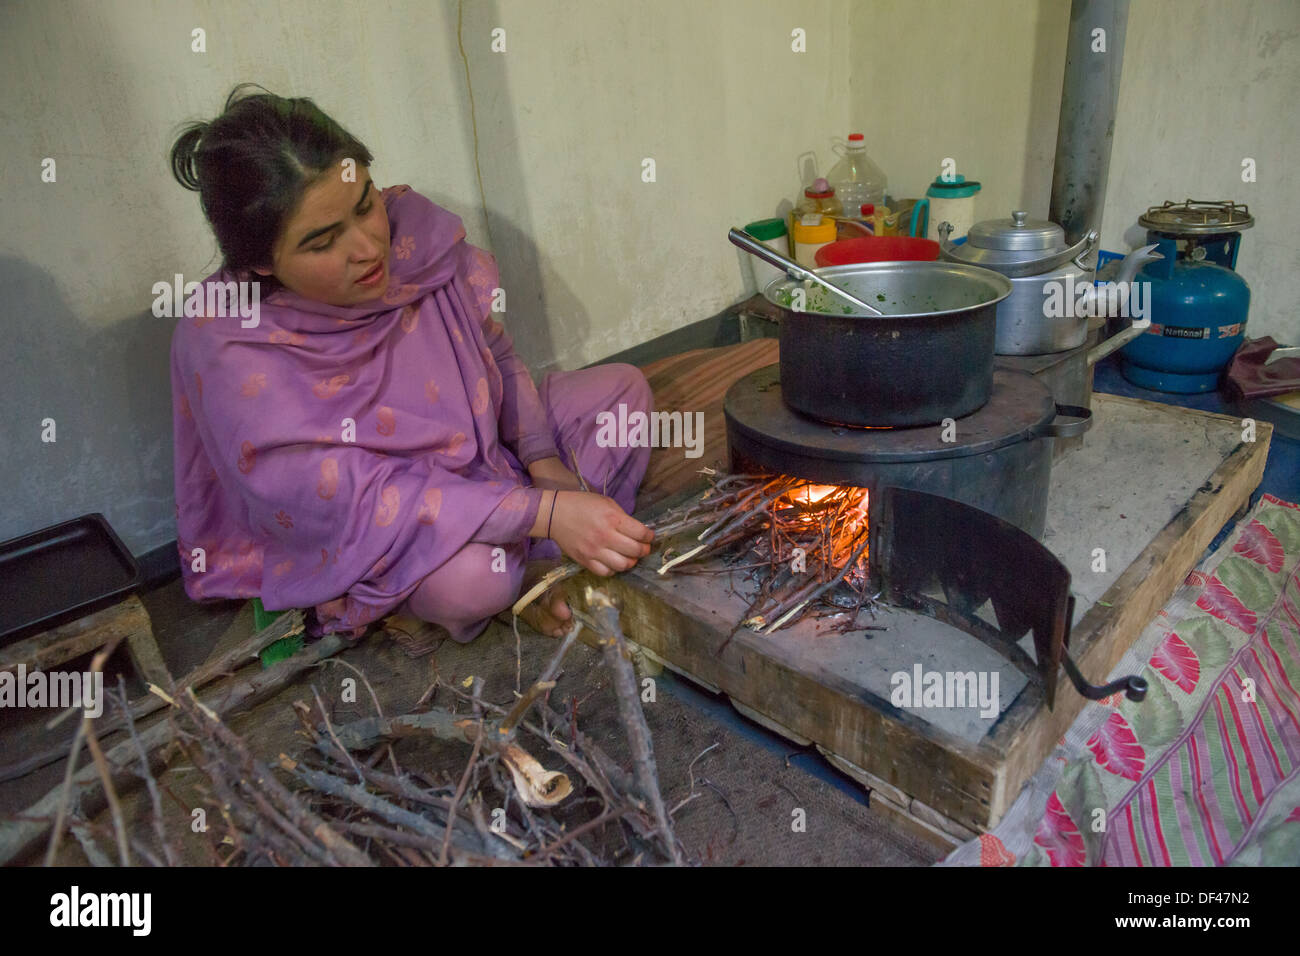 Young woman cooking on a fire inside of her house at Altit Village, near Karimabad, Hunza Valley, Gilgit-Baltistan, Pakistan - Stock Image